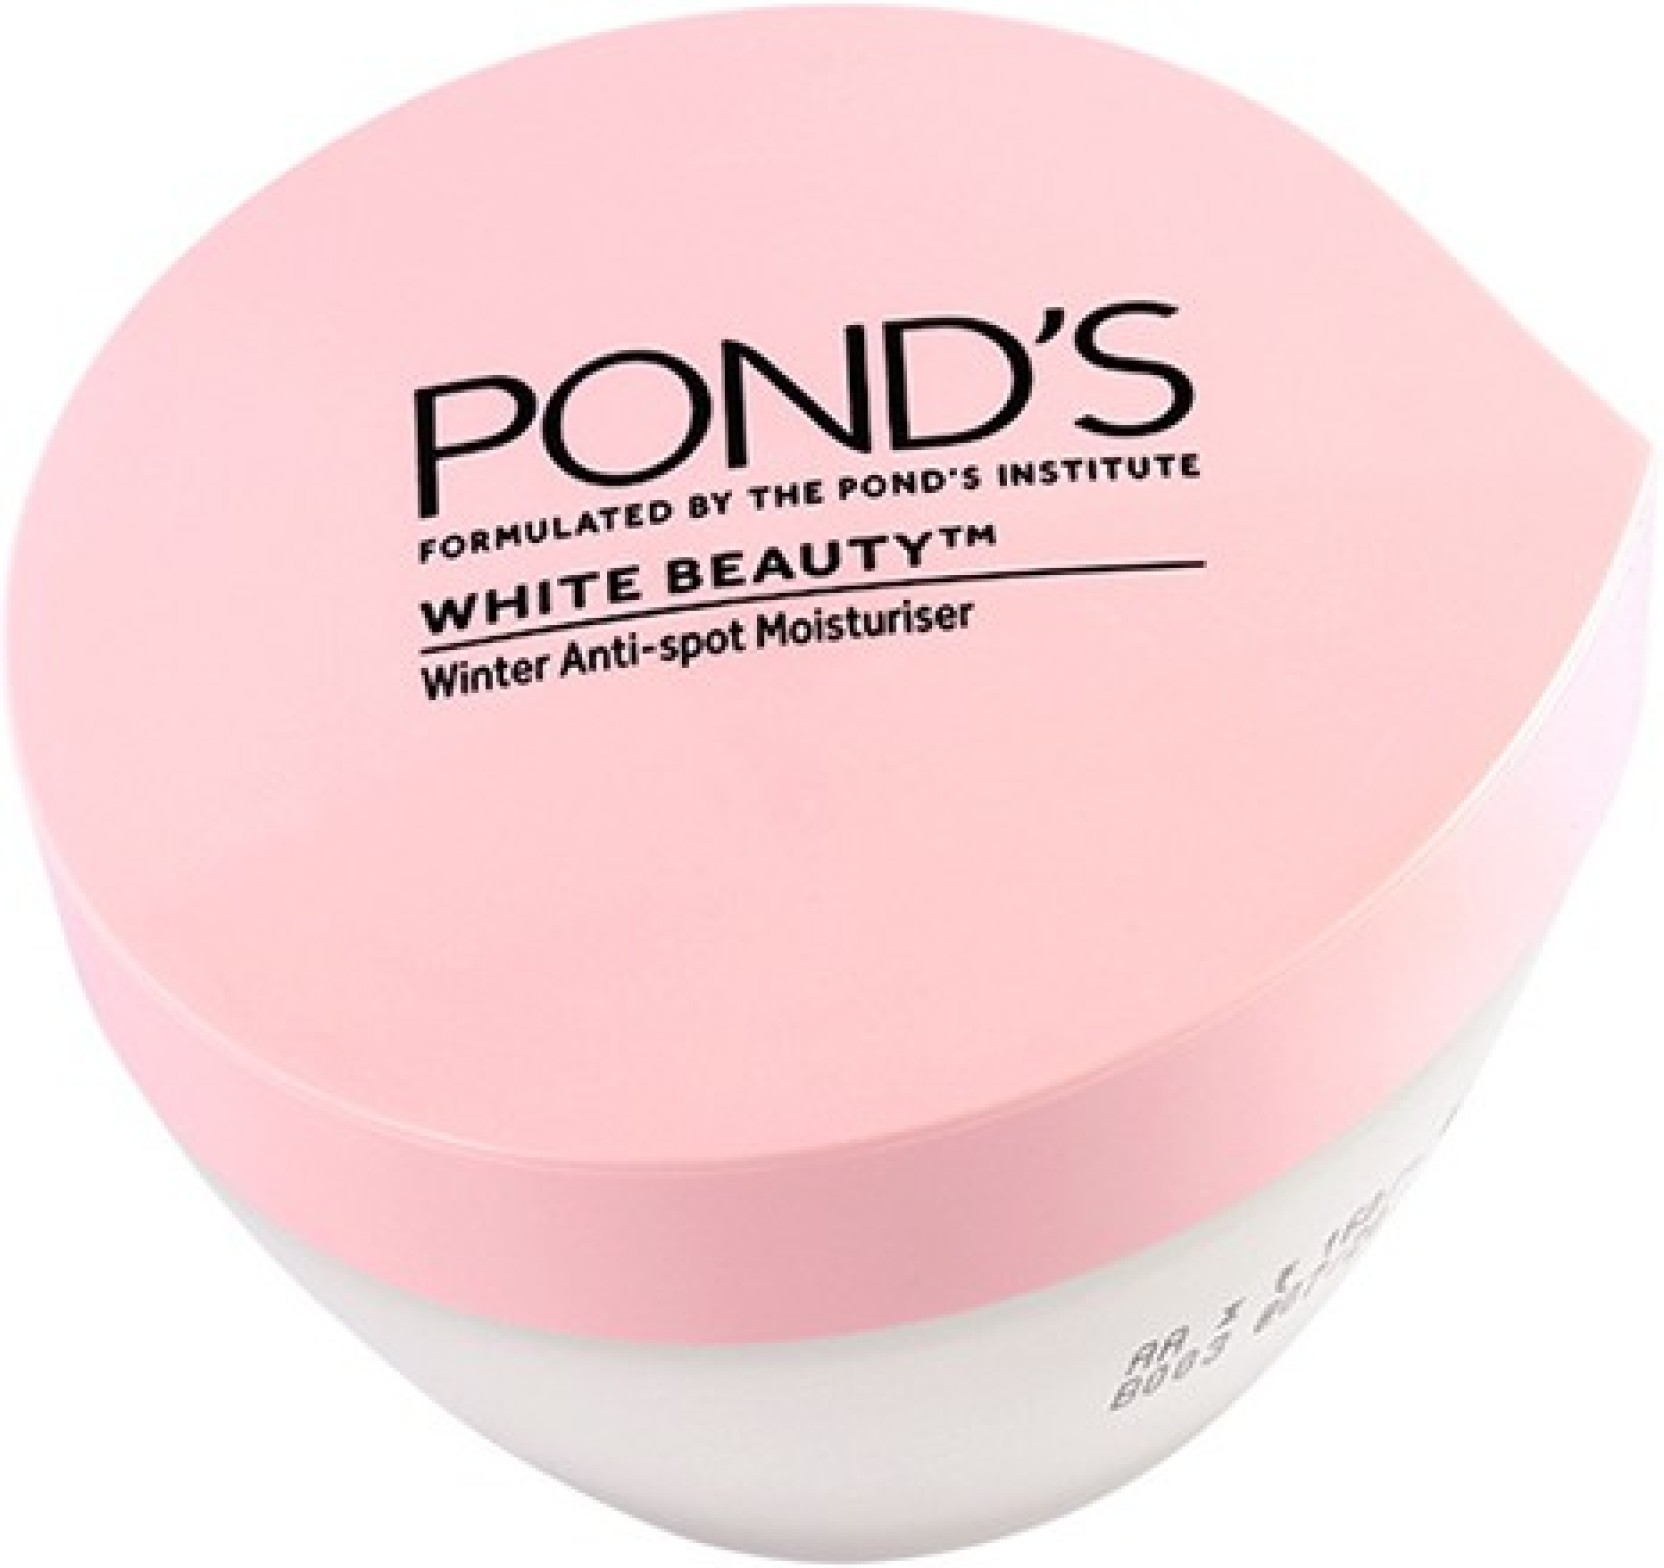 Ponds White Beauty Winter Anti Spot Moisturiser Price In India Age Miracle Day Cream Jar 50 G Add To Basket